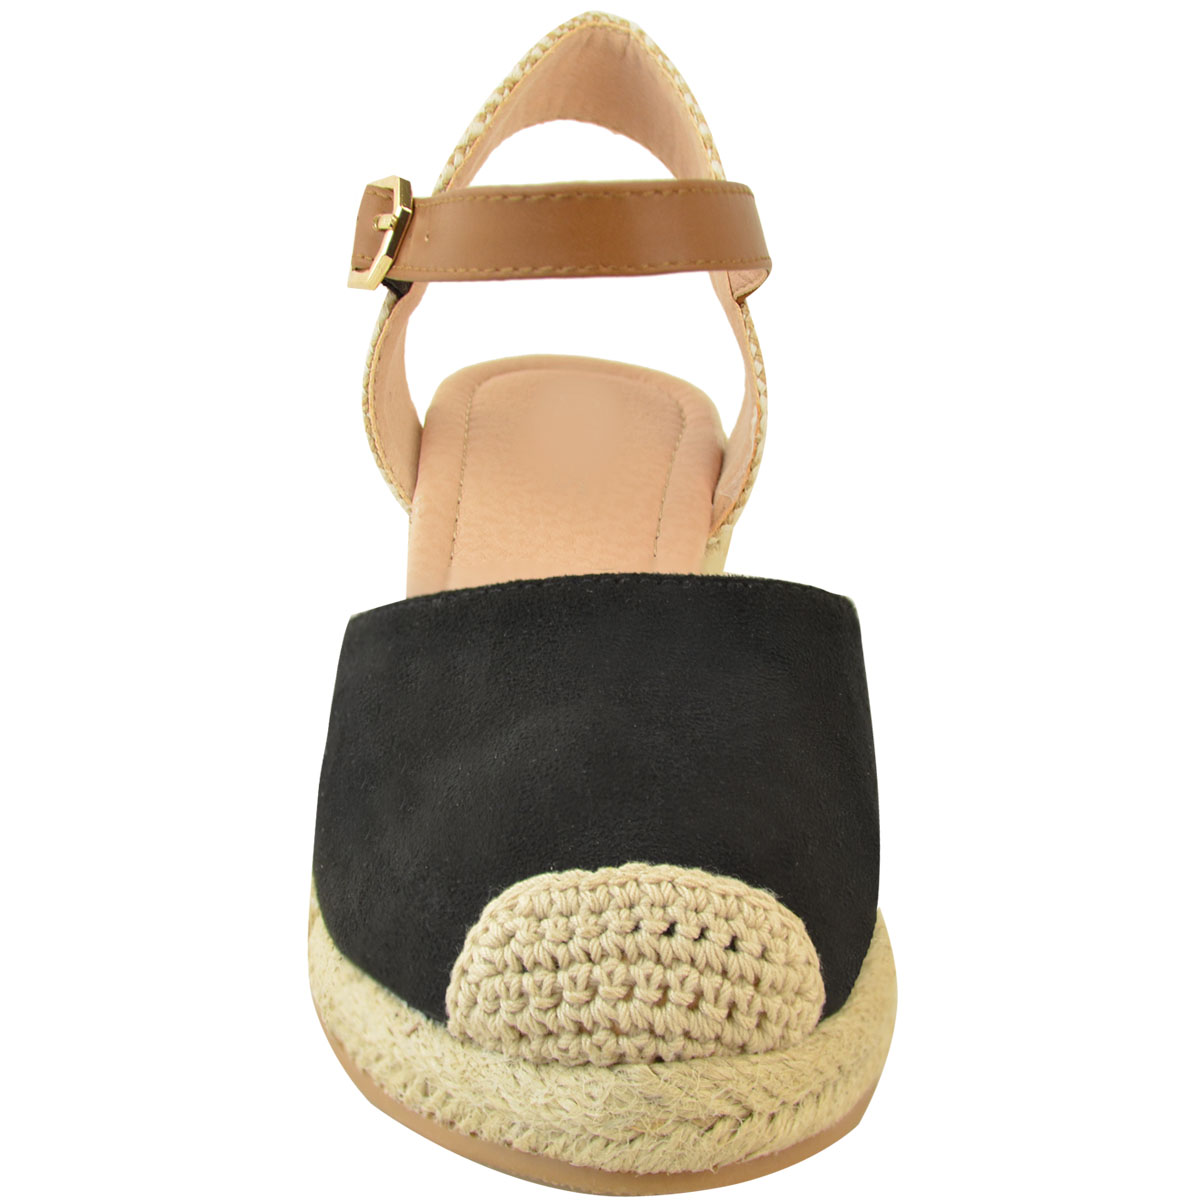 Details about Womens Ladies Low Heel Wedge Espadrilles Summer Sandals Casual Holiday Size New